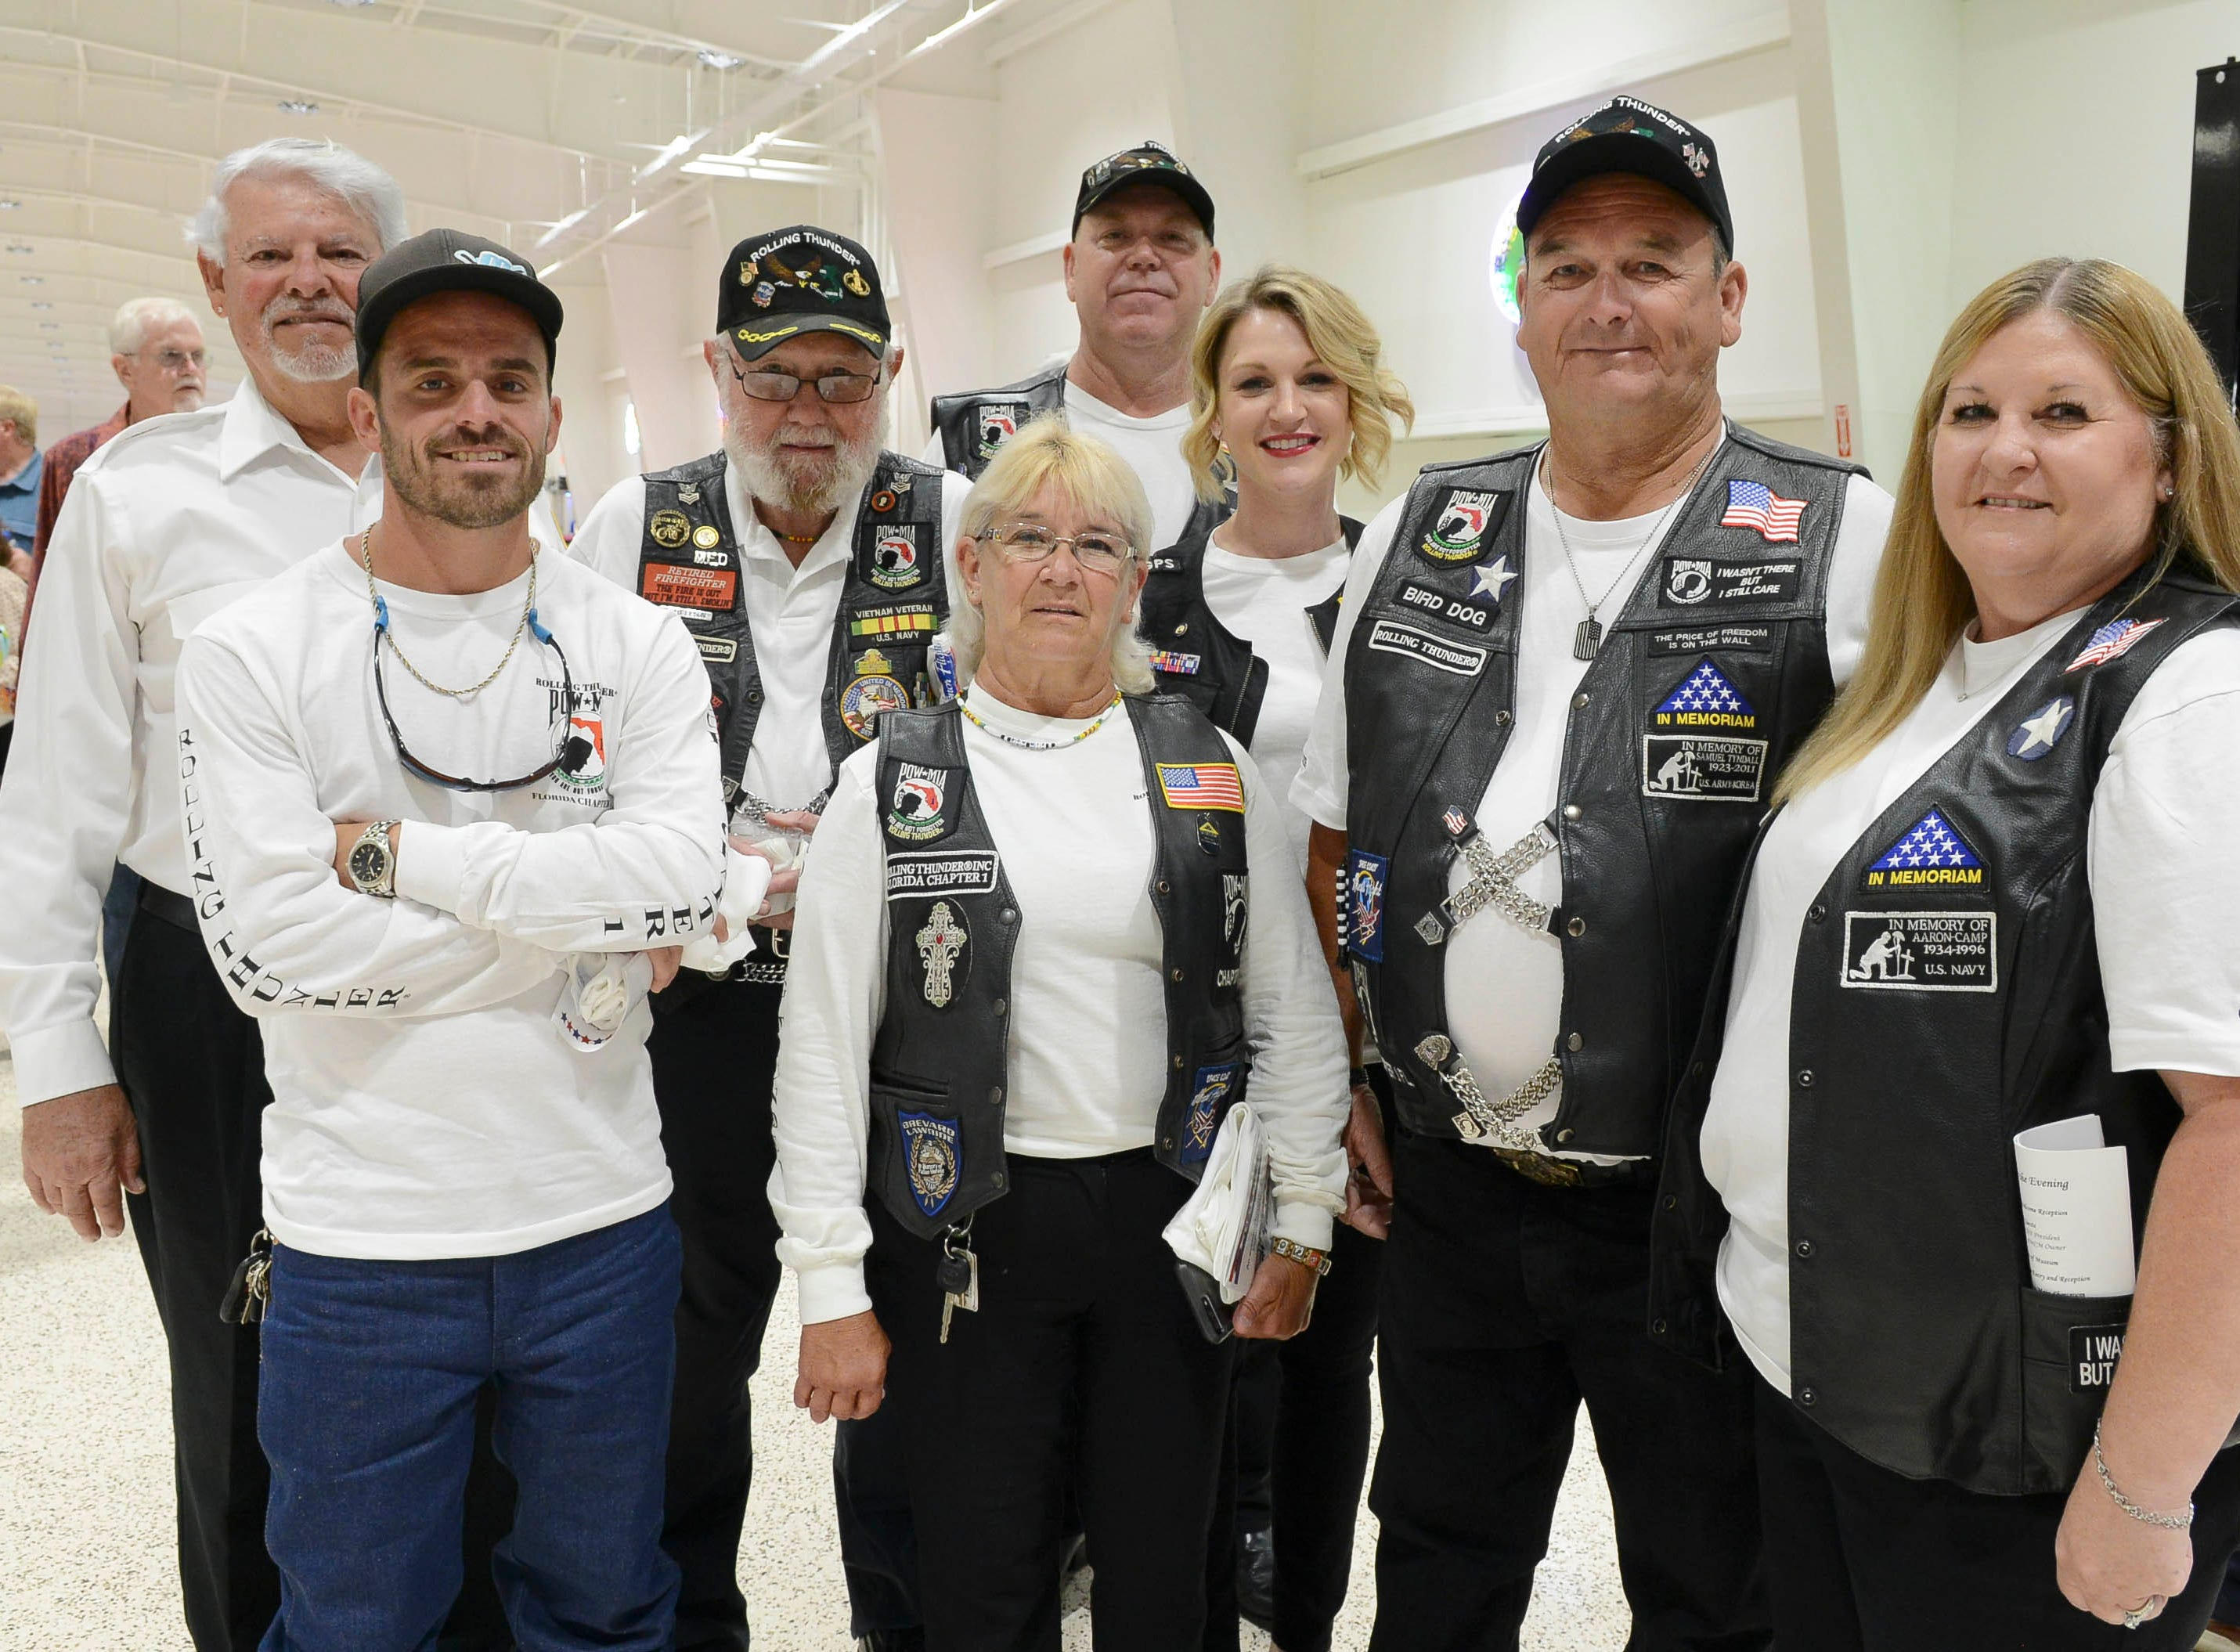 Members of the Rolling Thunder group get their picture taken during the Stars and Stripes fundraiser at American Muscle Car Museum. The event was a fundraiser for Space Coast Honor Flight.